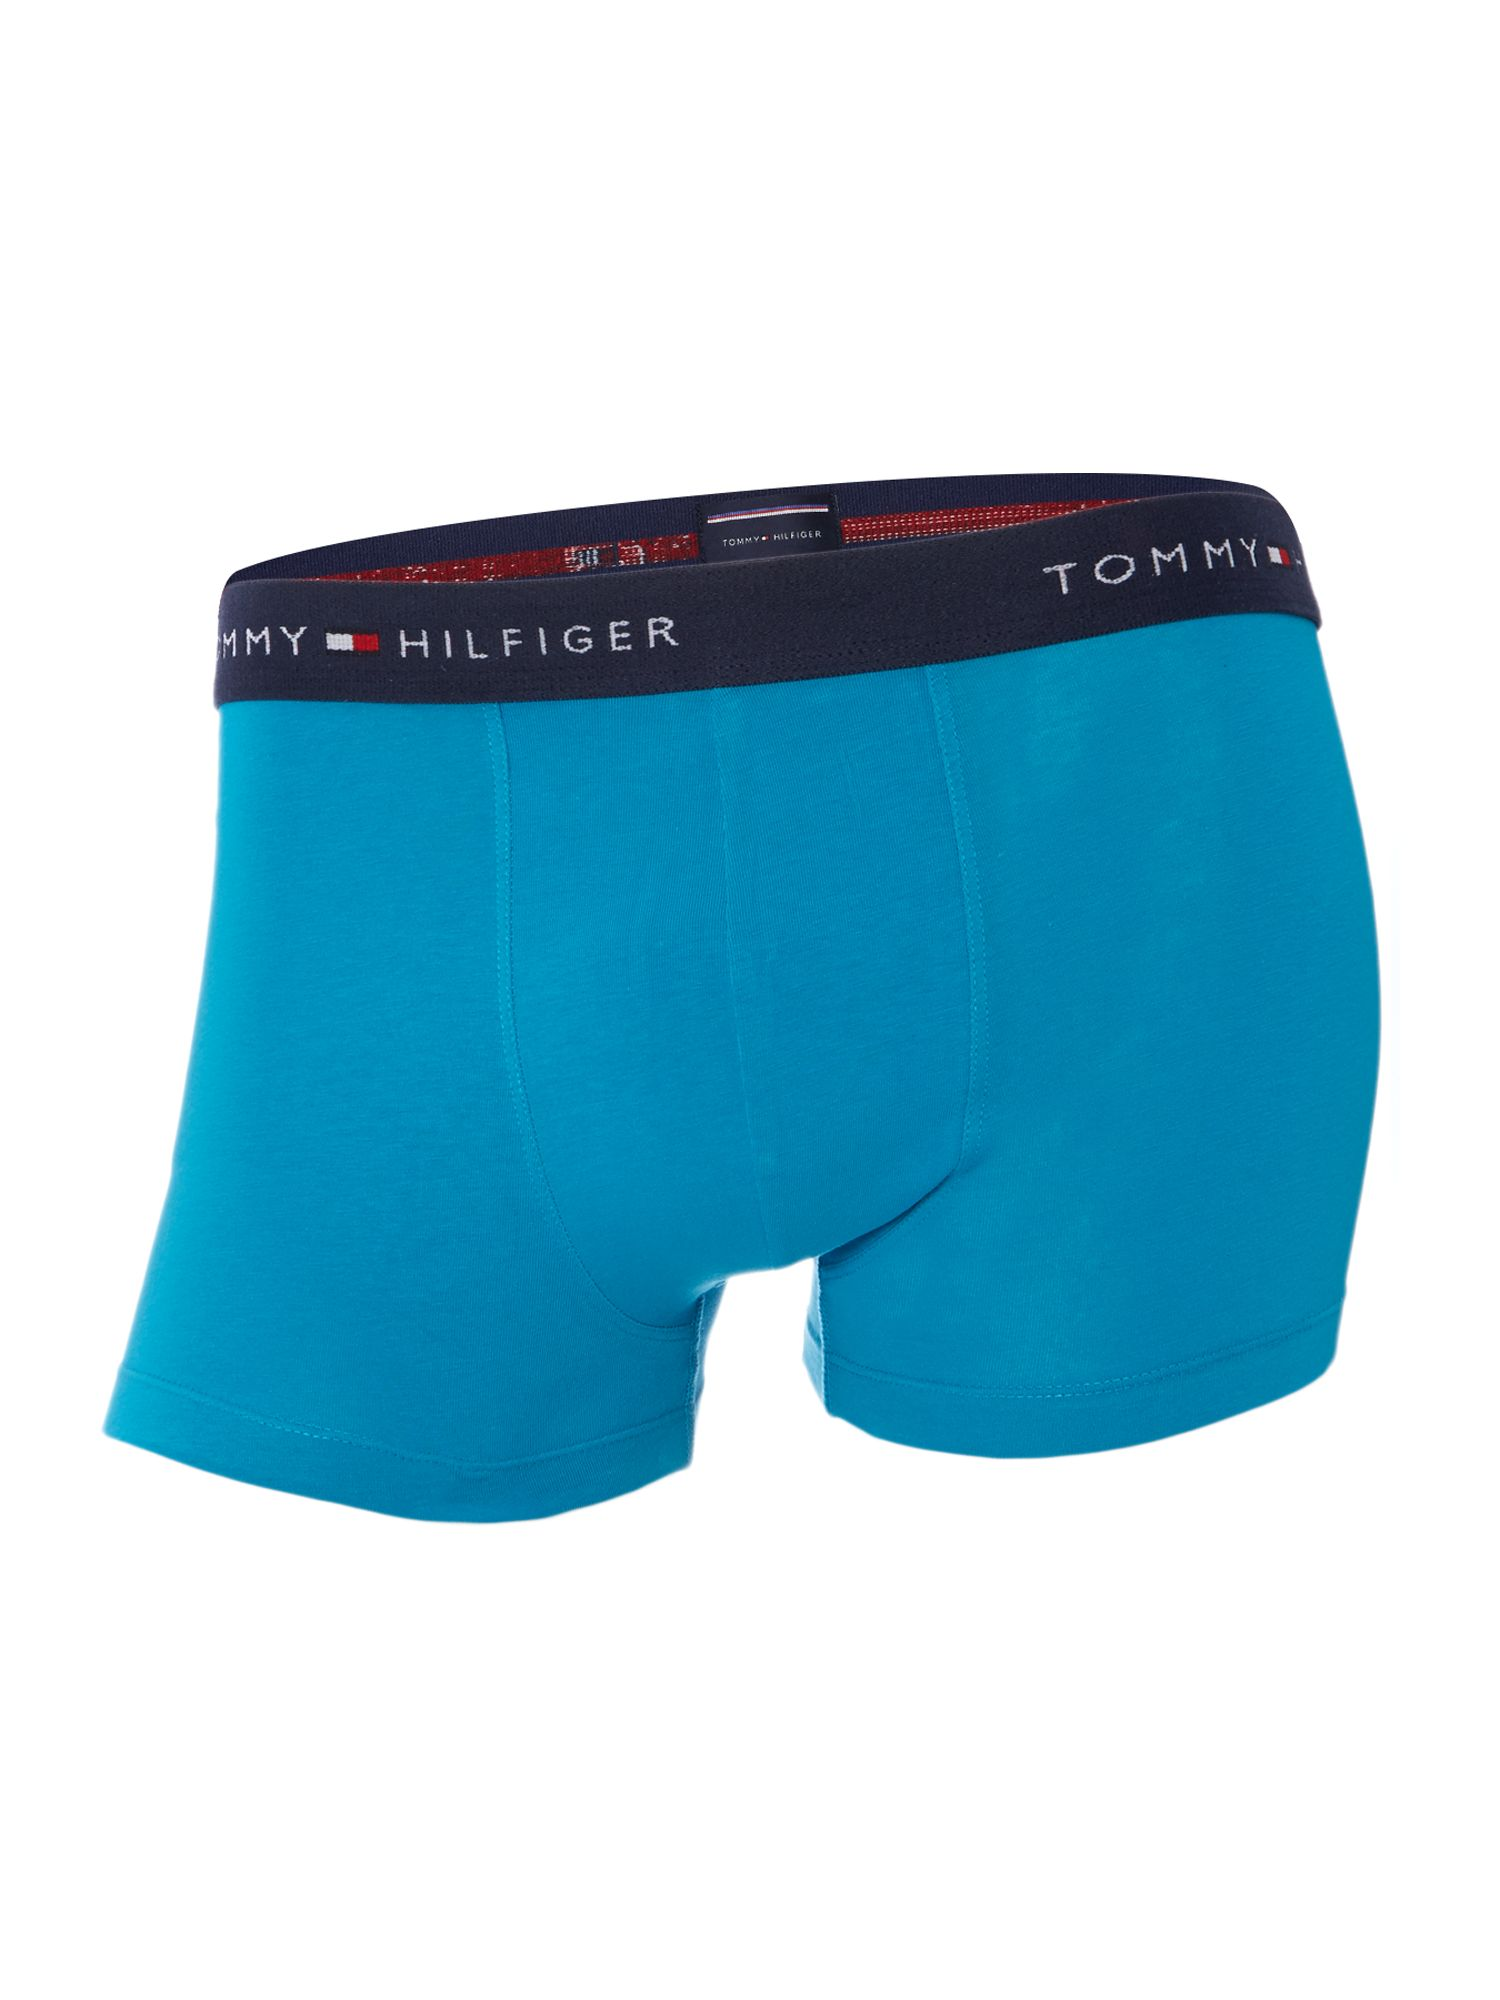 3 pack classic underwear trunk